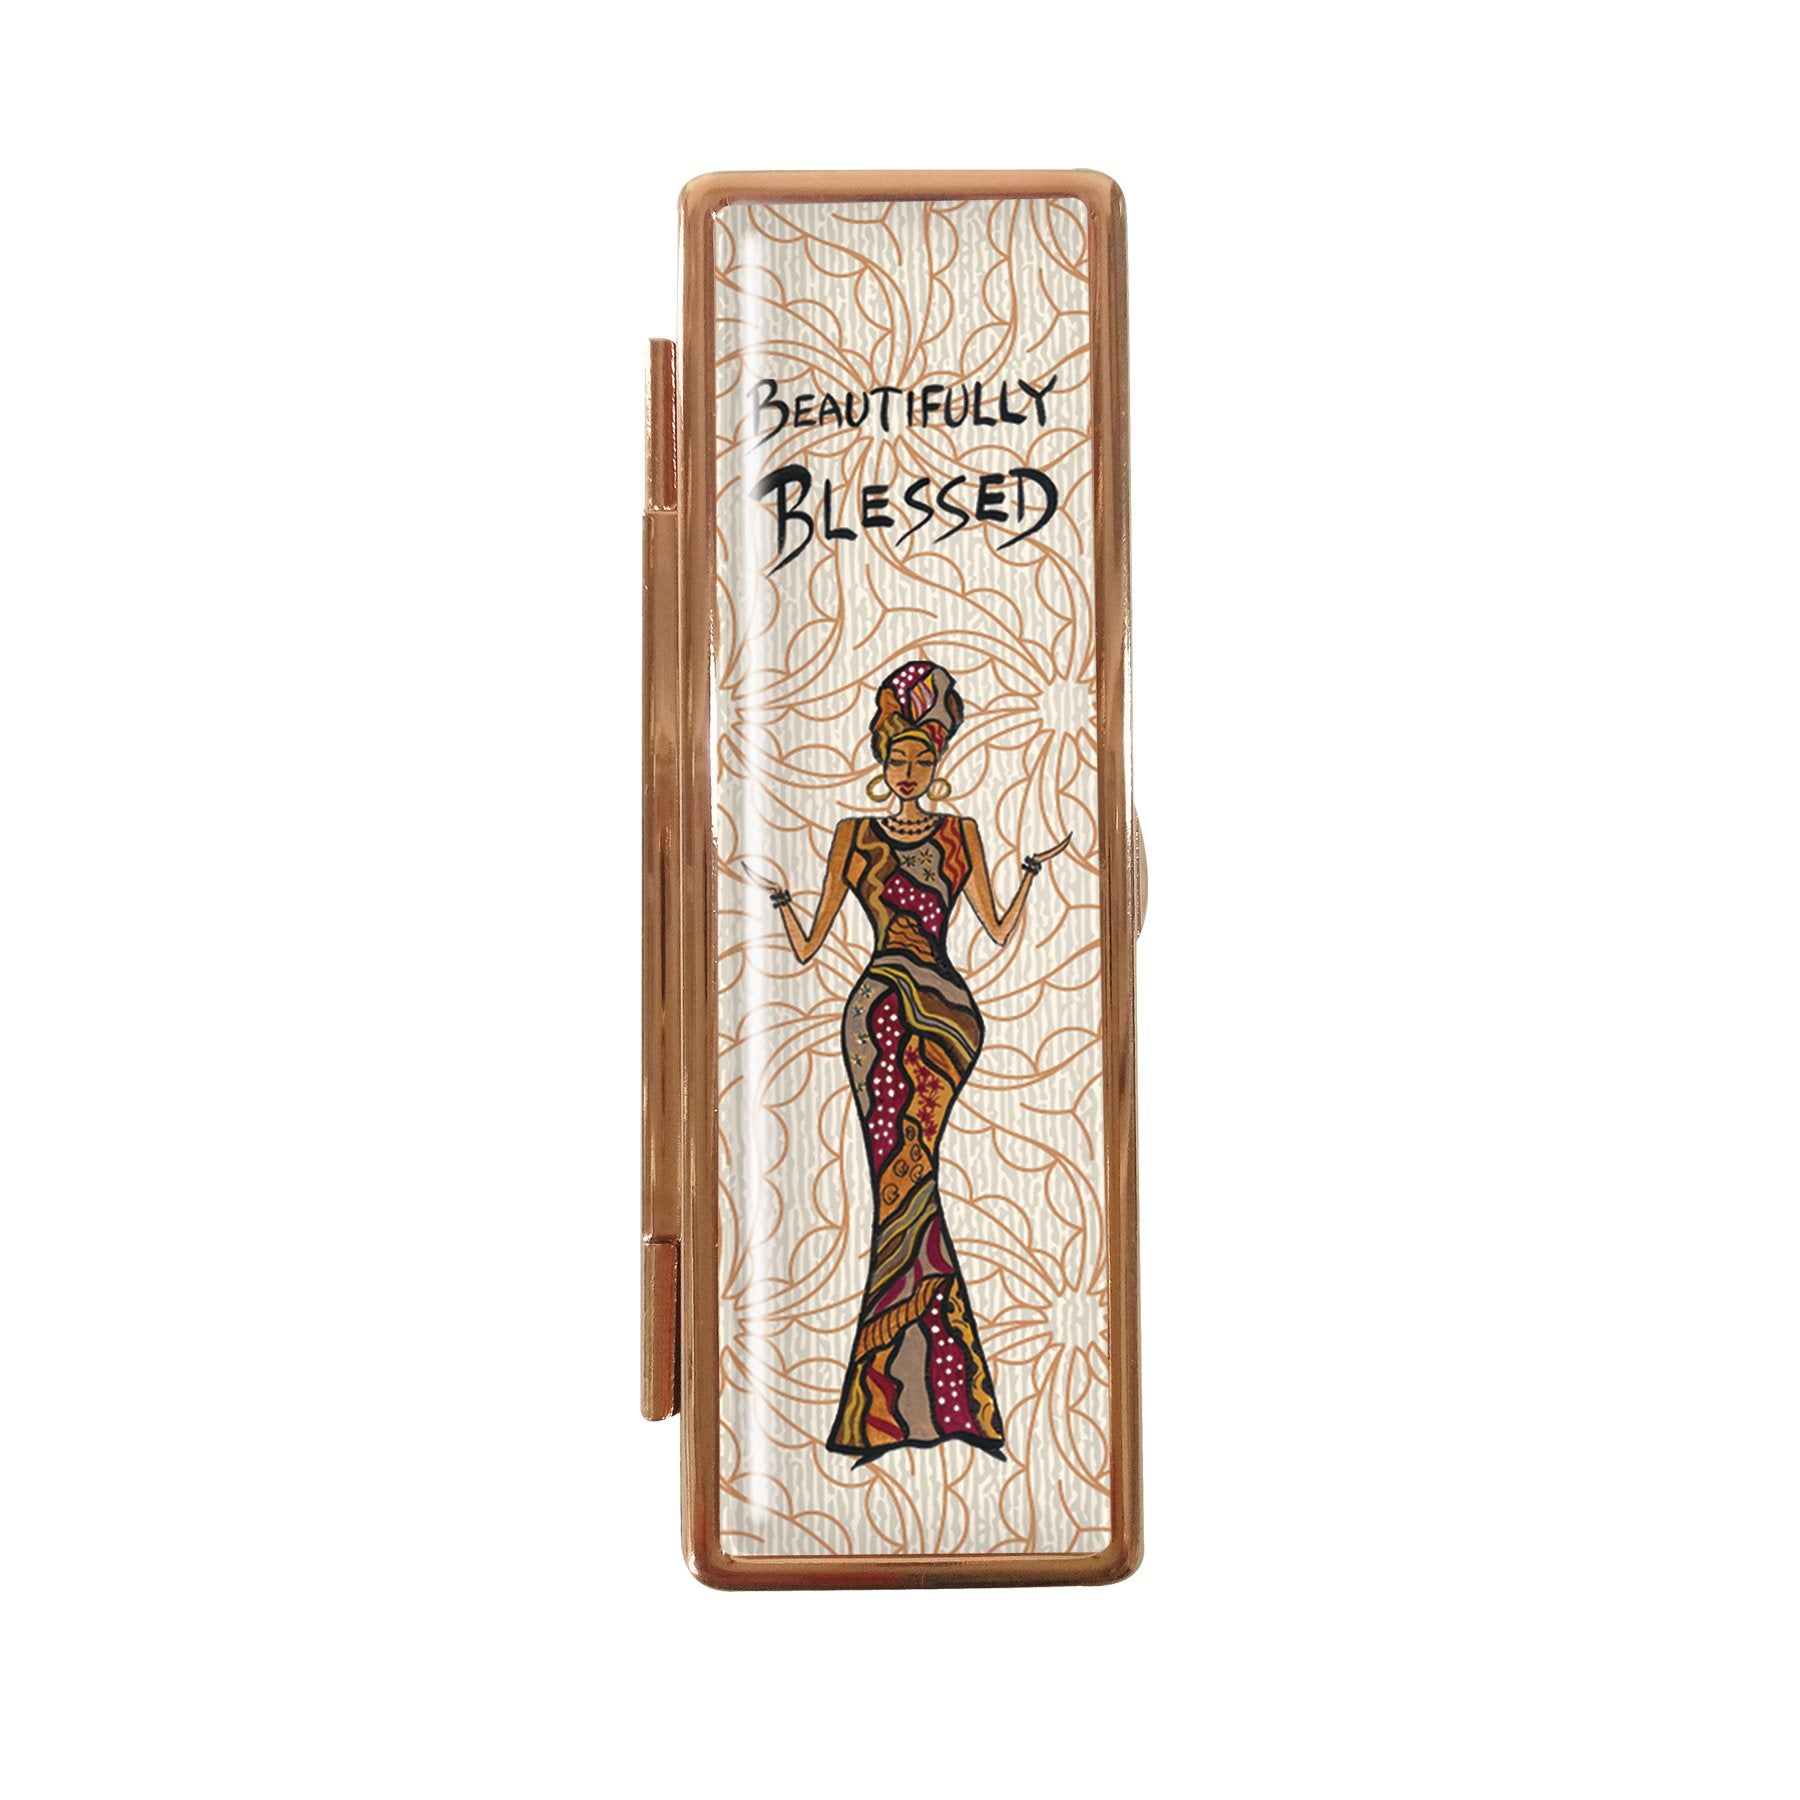 Beautifully Blessed: African American Lipstick Case by Cidne Wallace